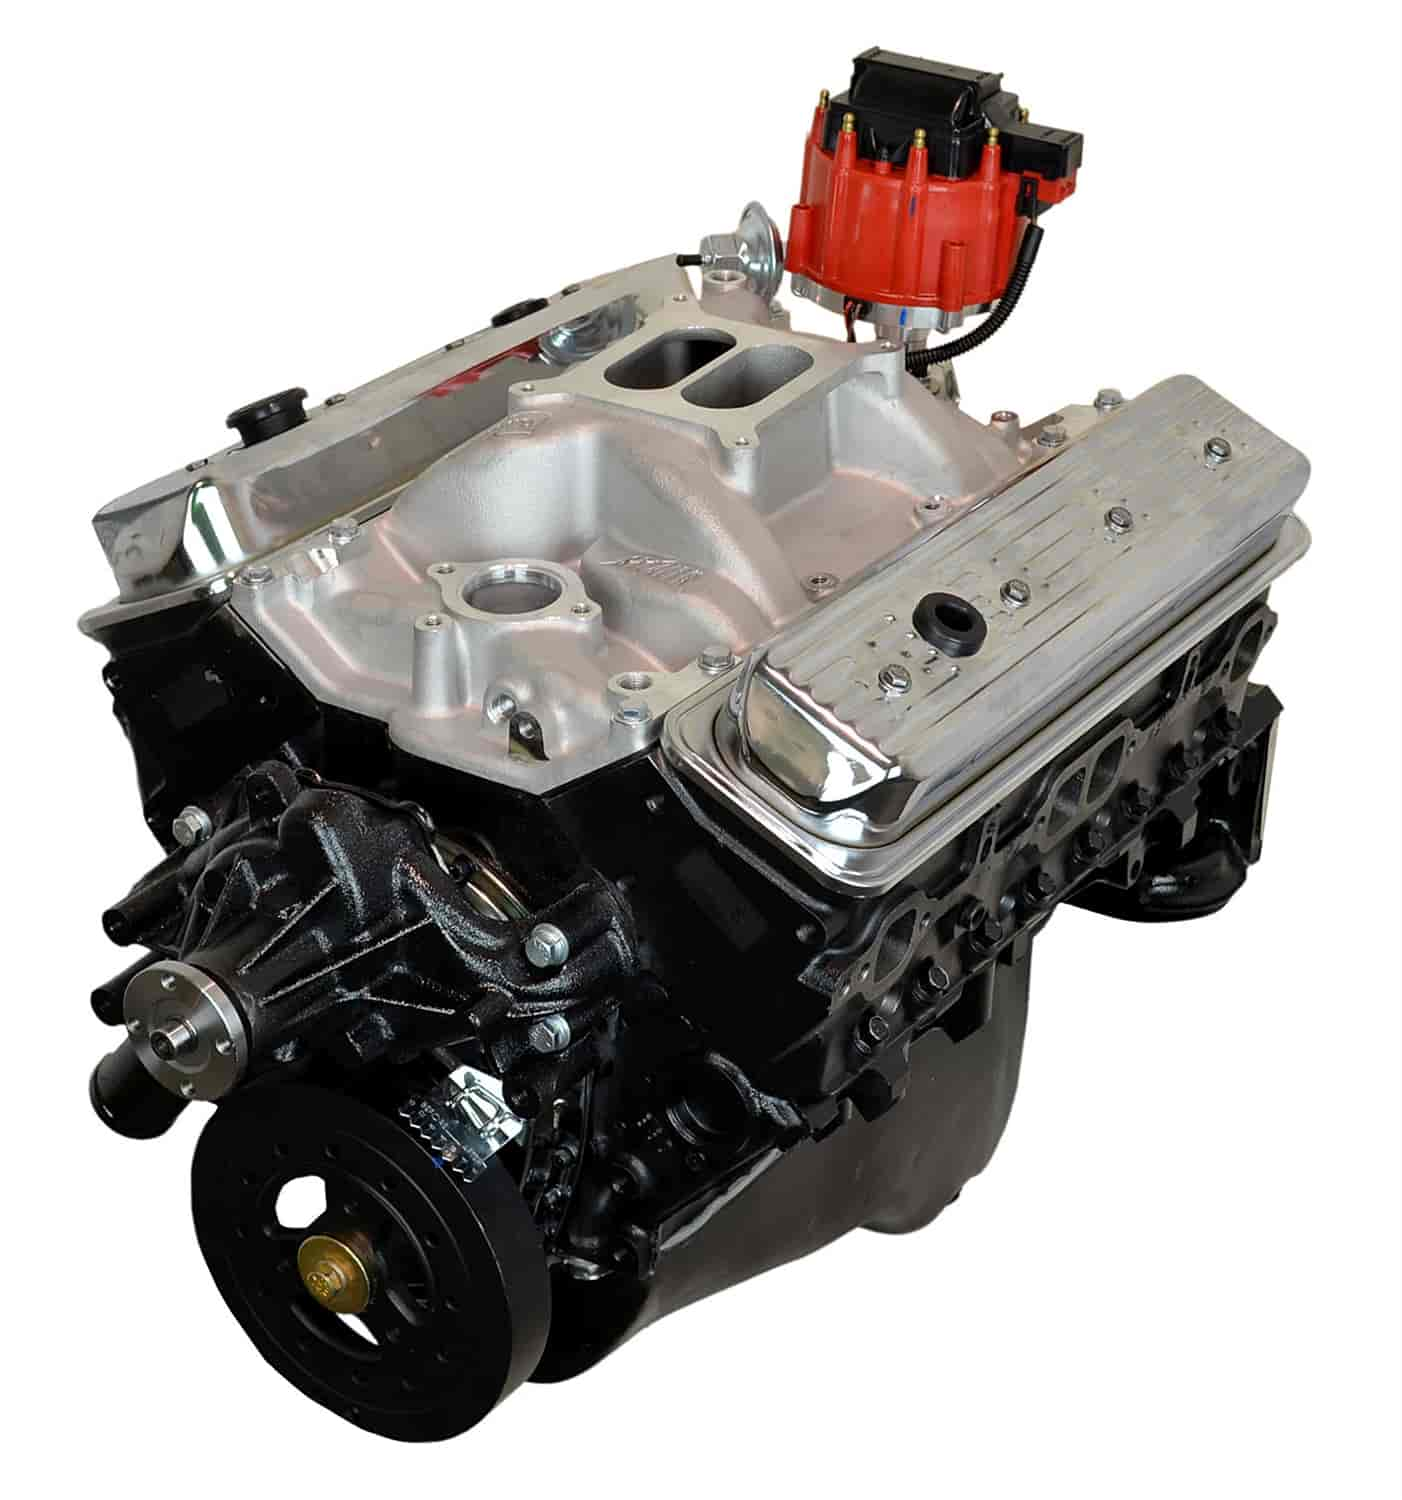 atk engines hp32m high performance crate engine small block chevy 350ci 350hp 400tq jegs. Black Bedroom Furniture Sets. Home Design Ideas